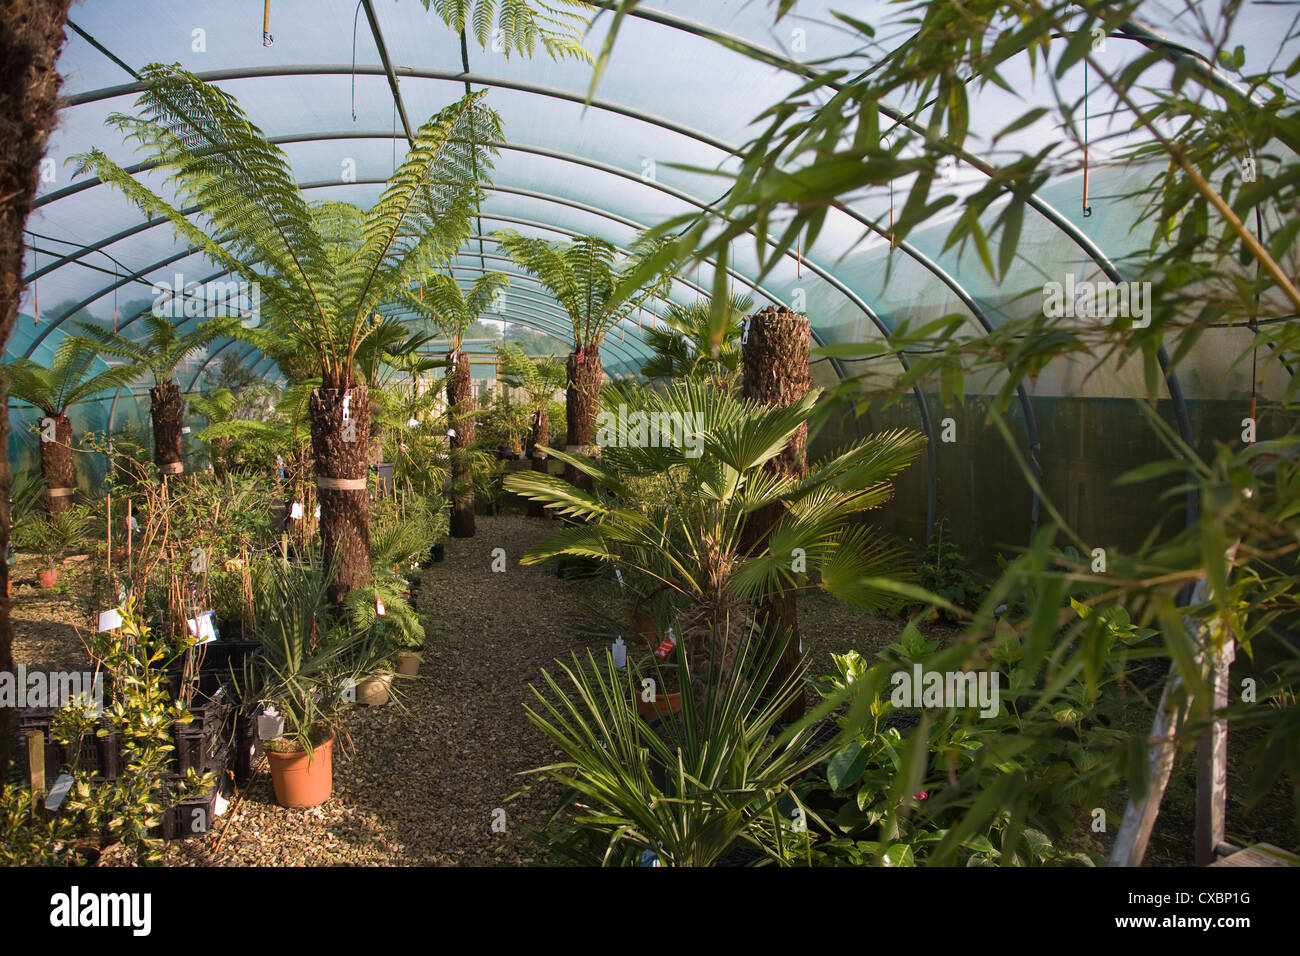 Fern Nursery Stock Photos & Fern Nursery Stock Images - Alamy